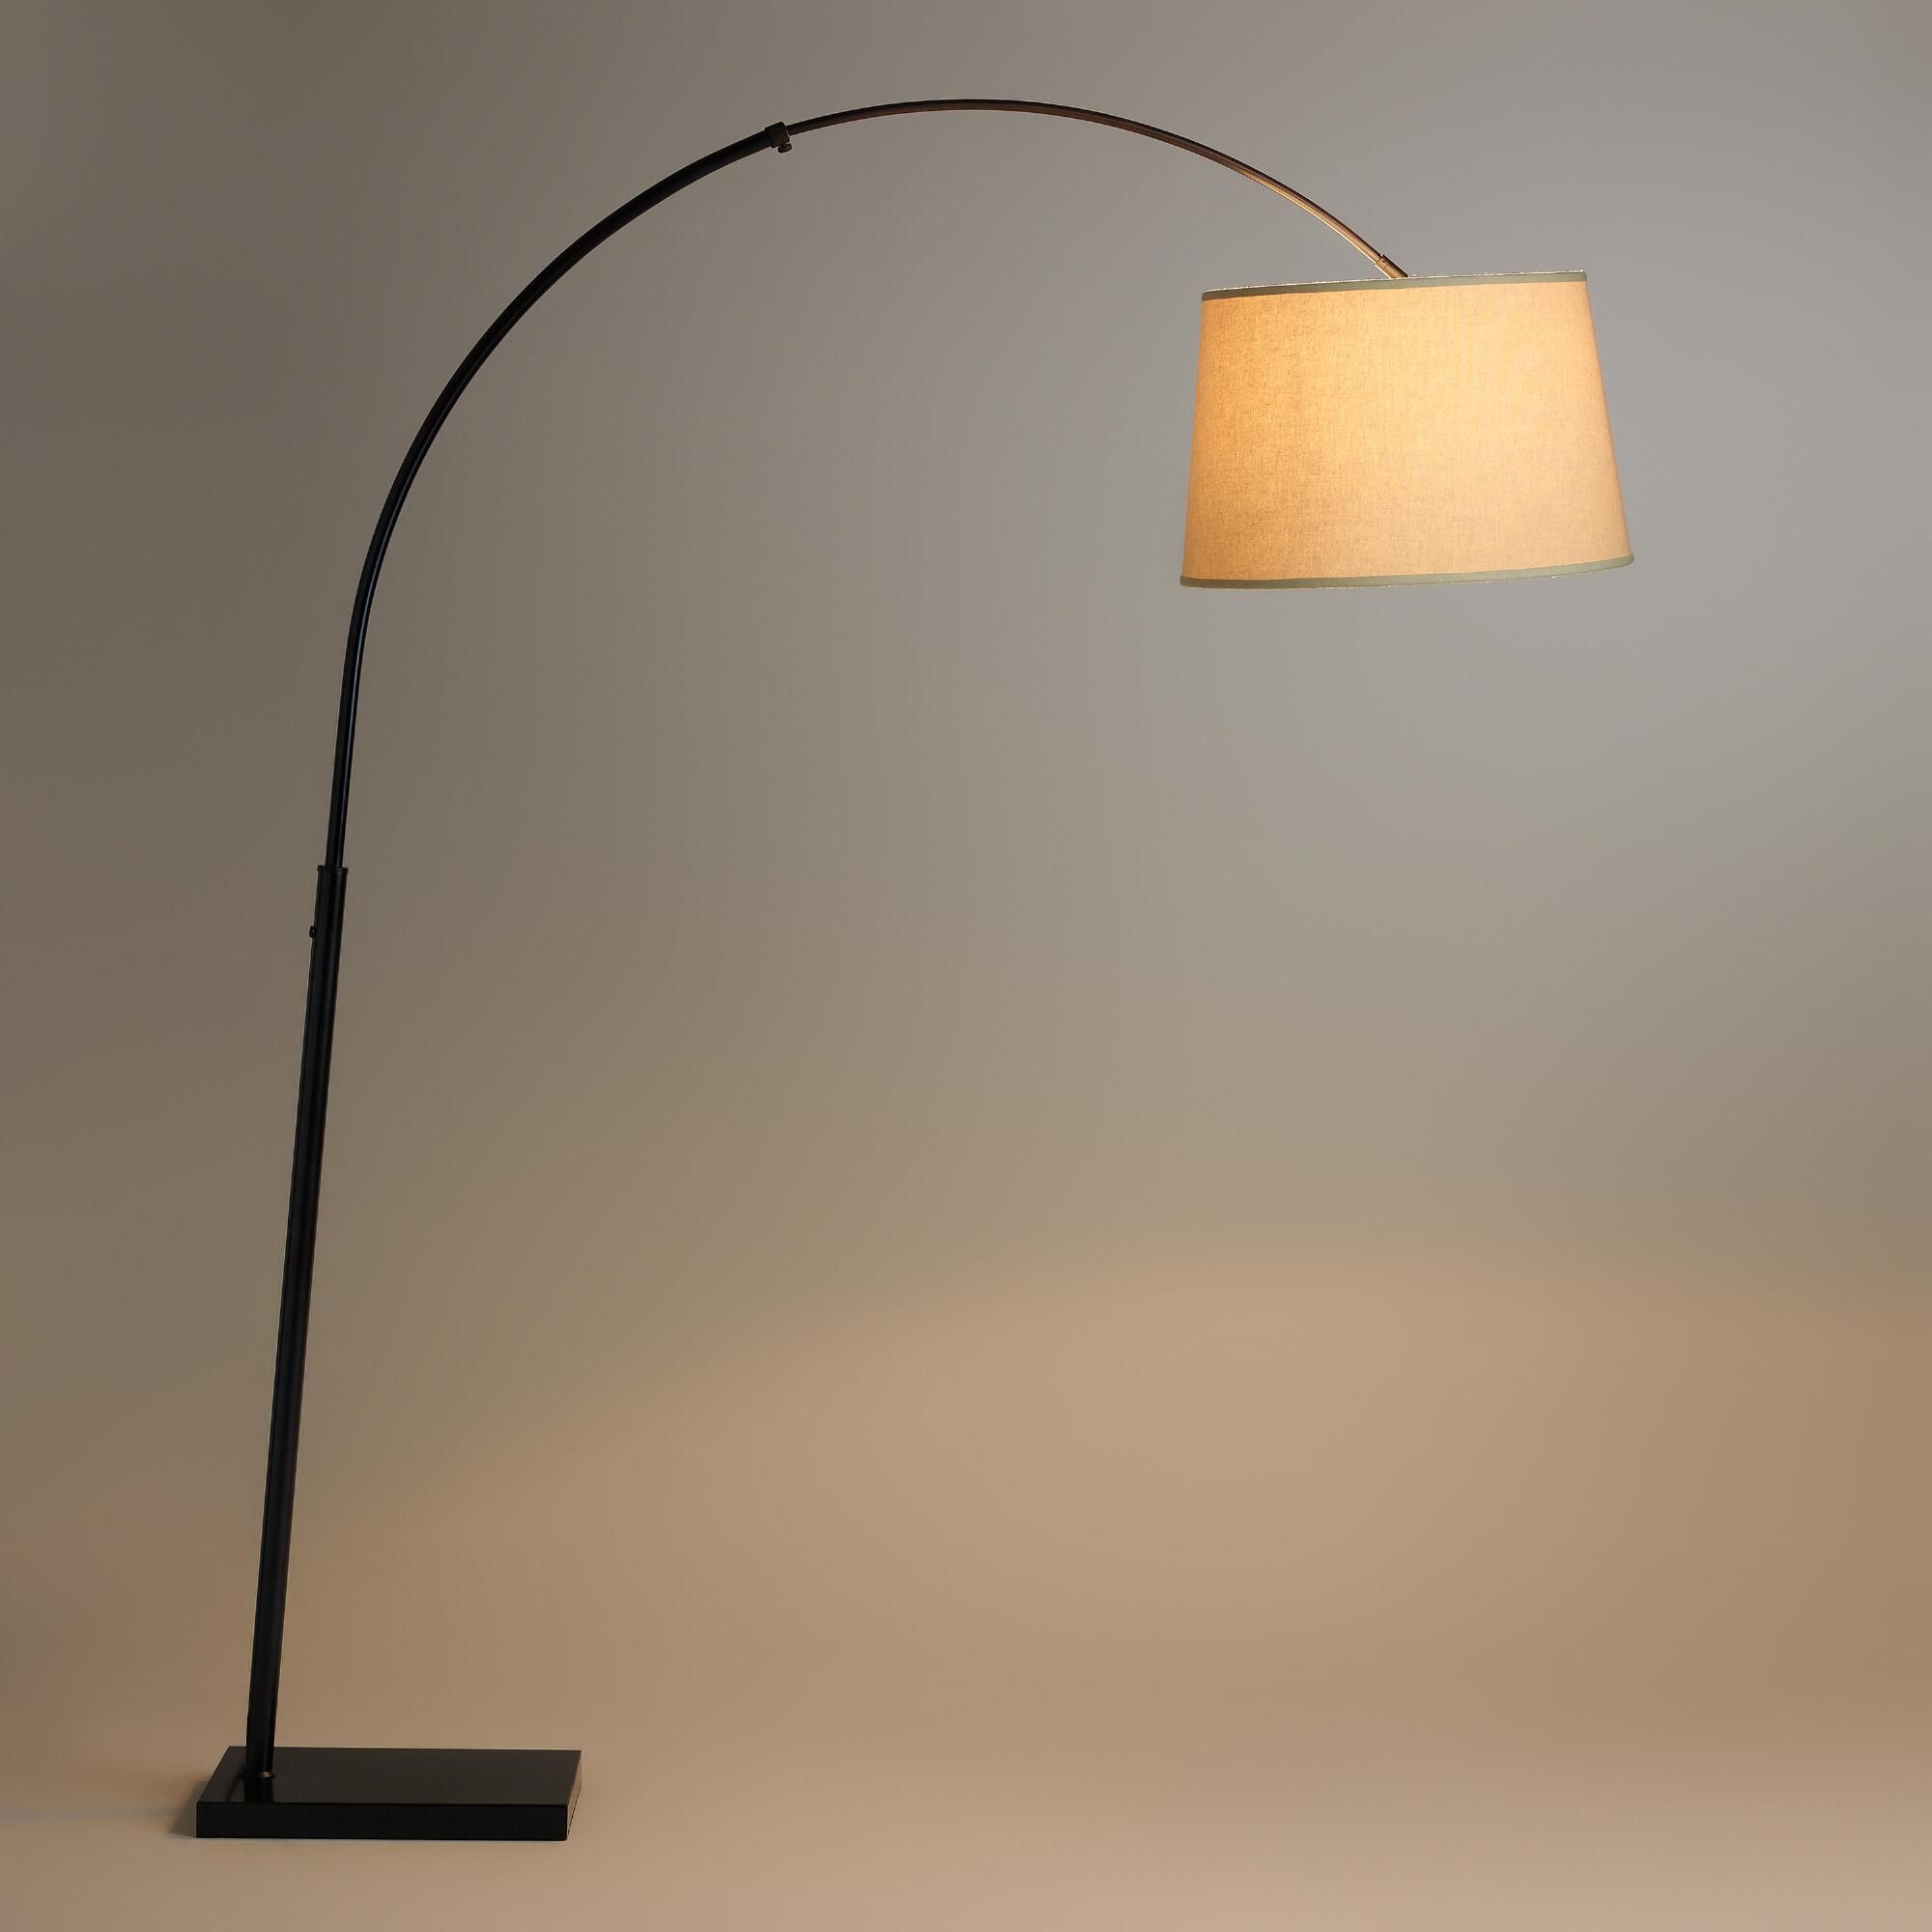 Sleek And Dramatic The Loden Arc Floor Lamp Base Creates